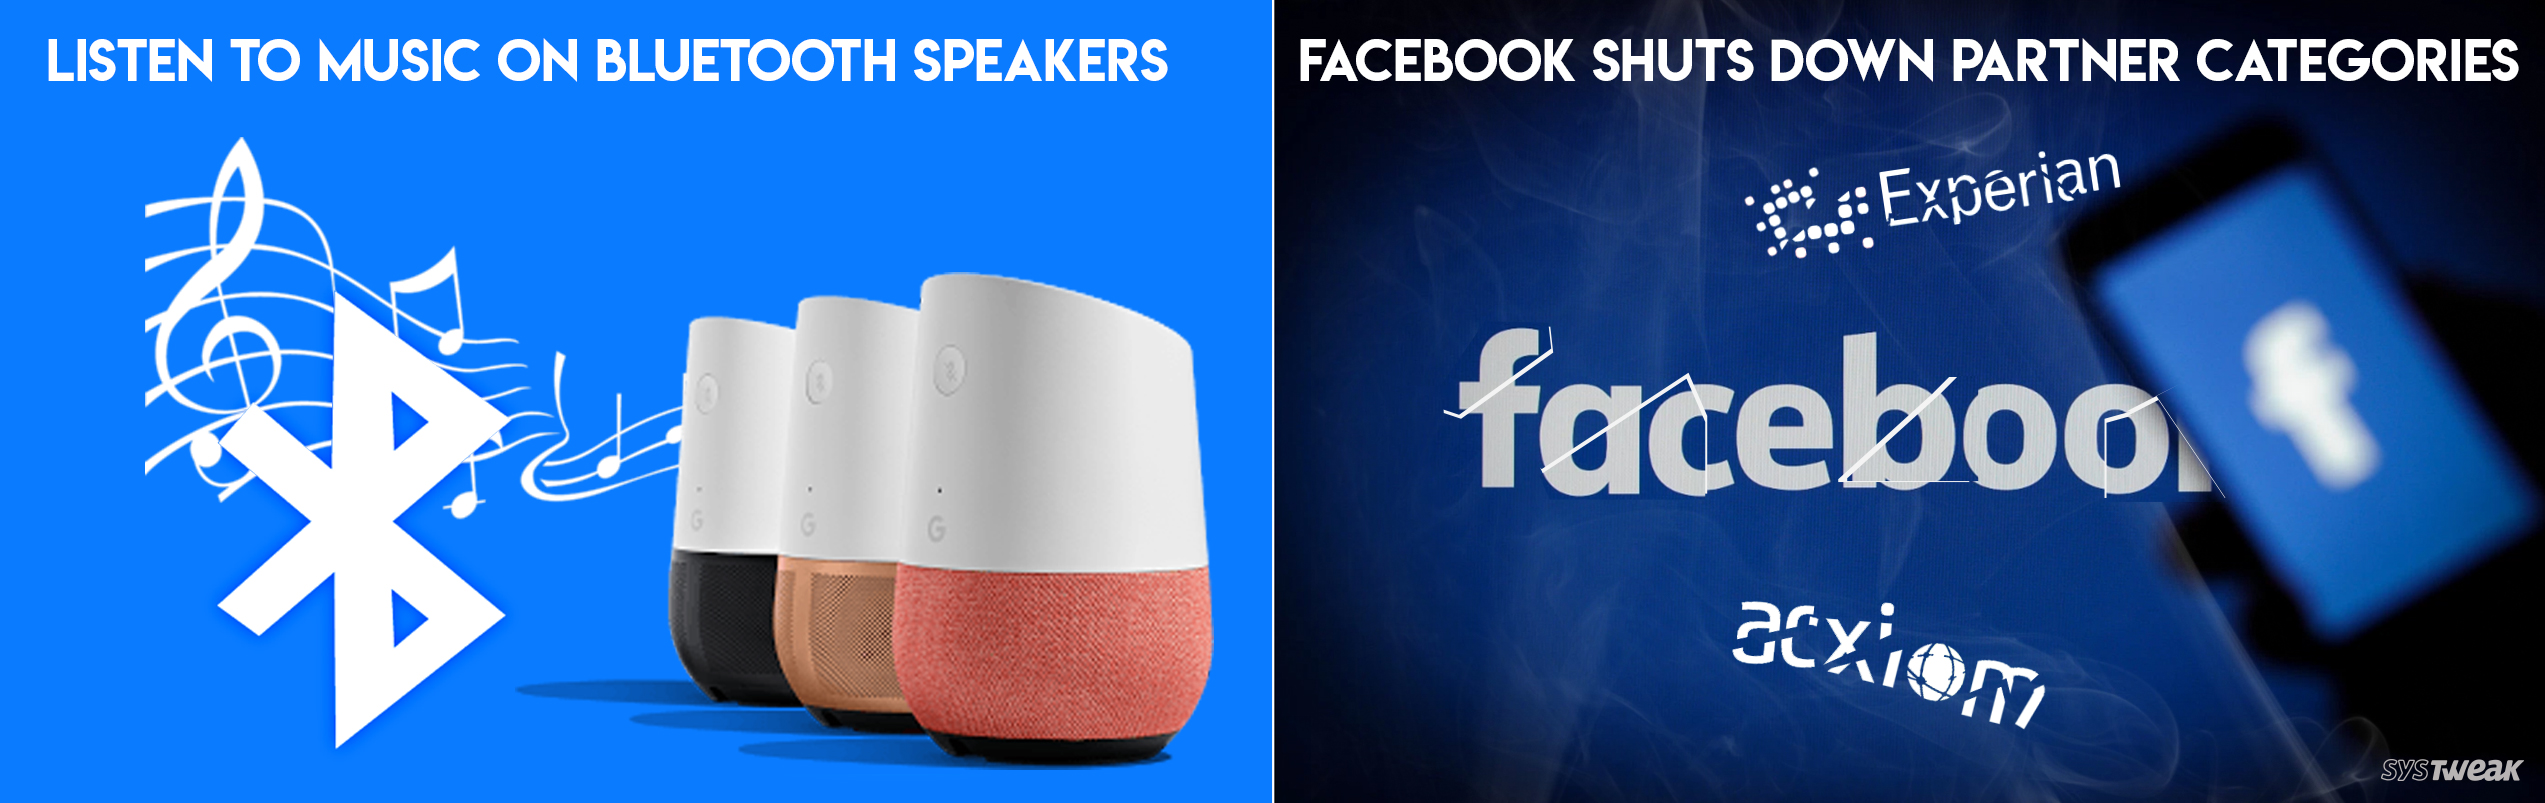 Newsletter: Google Home Pairs Up With Bluetooth Speakers & Facebook Bids Adieu To Third Party Apps For Data